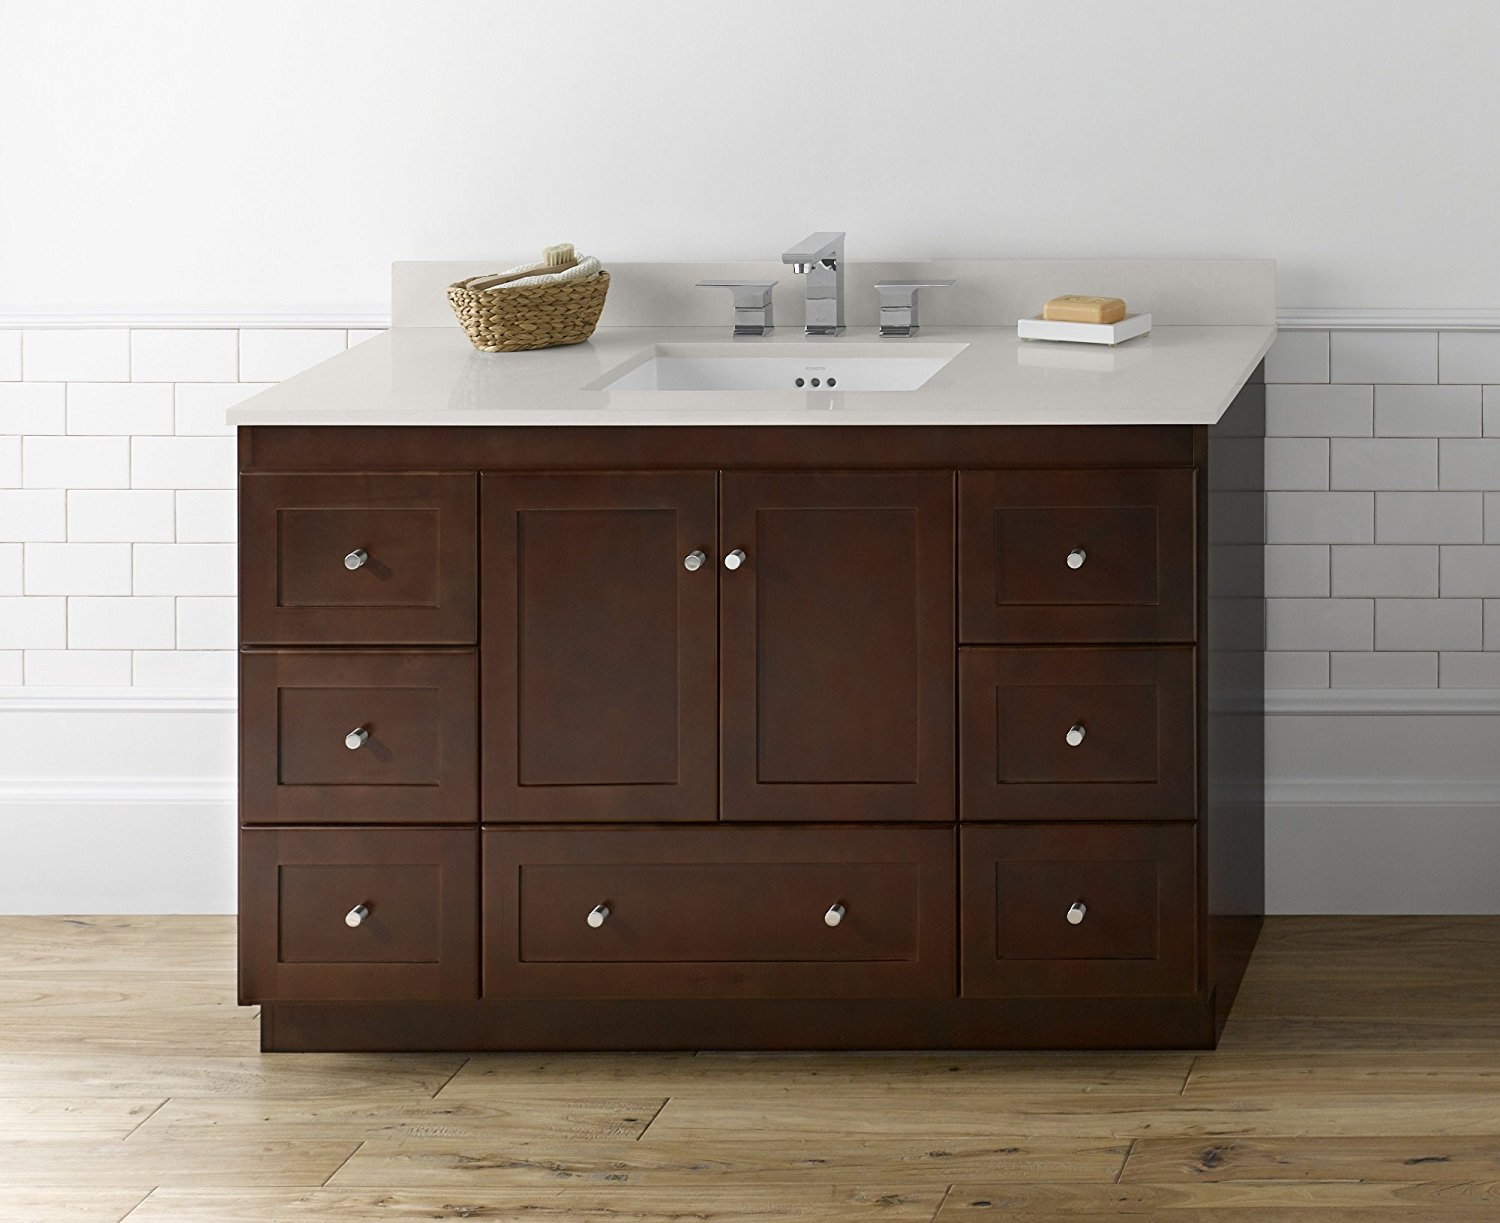 RONBOW Shaker 48 Inch Bathroom Vanity Base Cabinet with Soft Close Wood Door, Cabinet Drawer and Adjustable Shelf in Dark Cherry 081948-3-H01